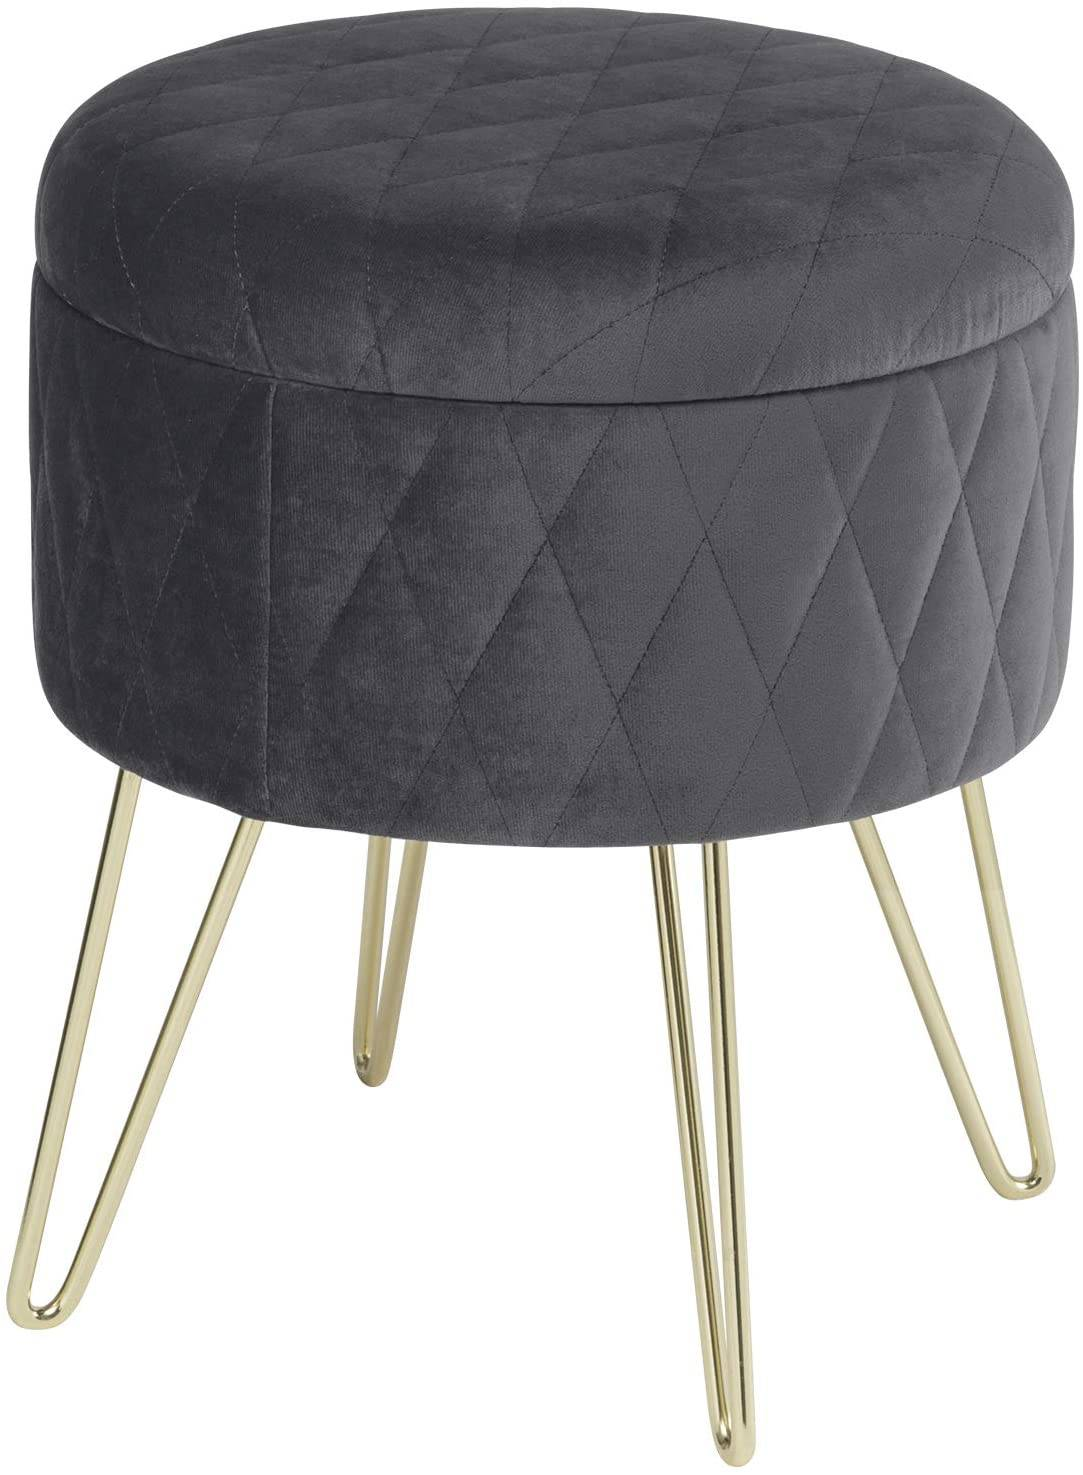 - Upholstered Stool With Storage Space Made Of Velvet, Round Woltu.eu